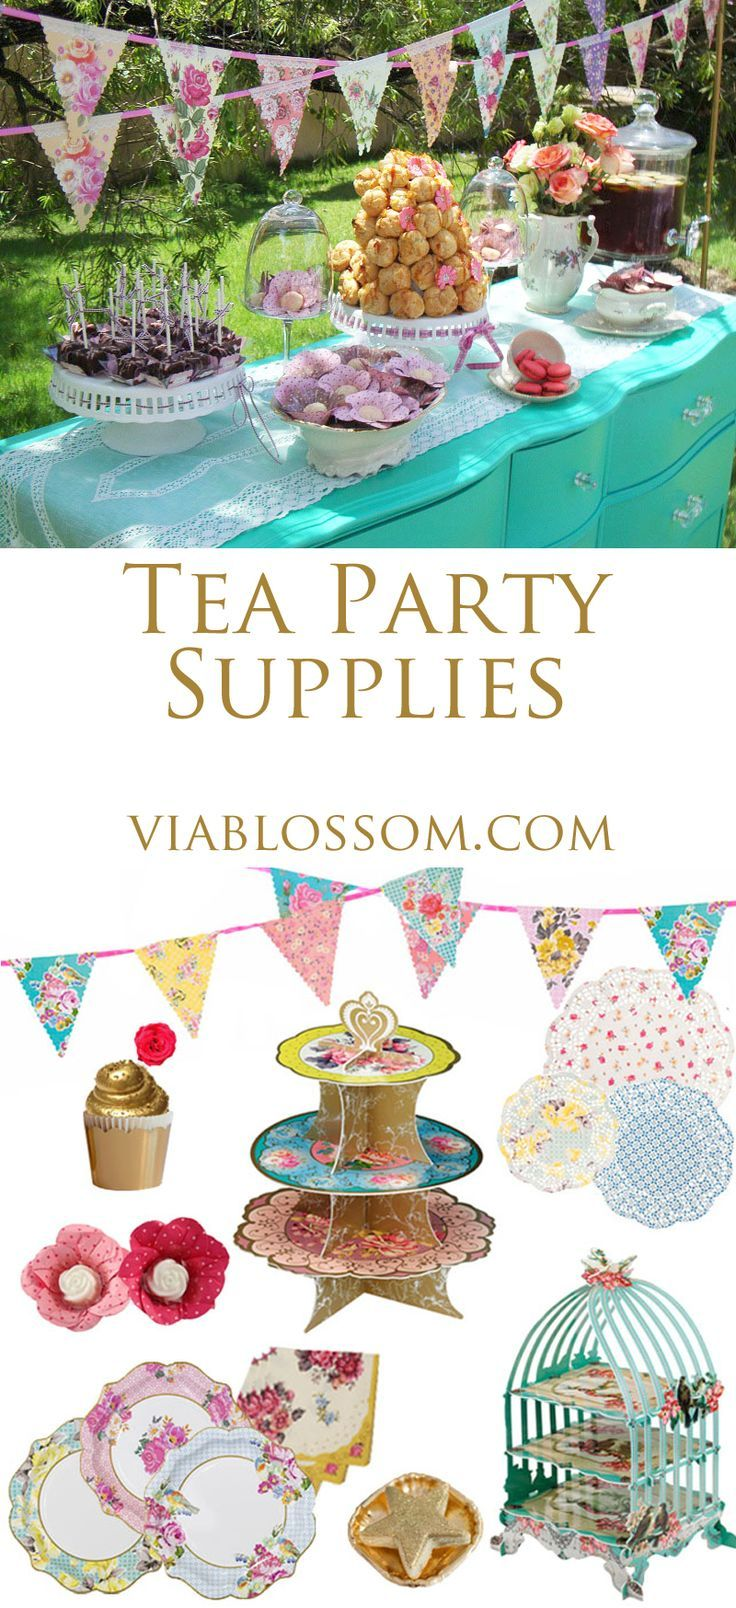 Tea Party decorations for baby showers, girl parties and bridal shower.  All available at http://viablossom.com